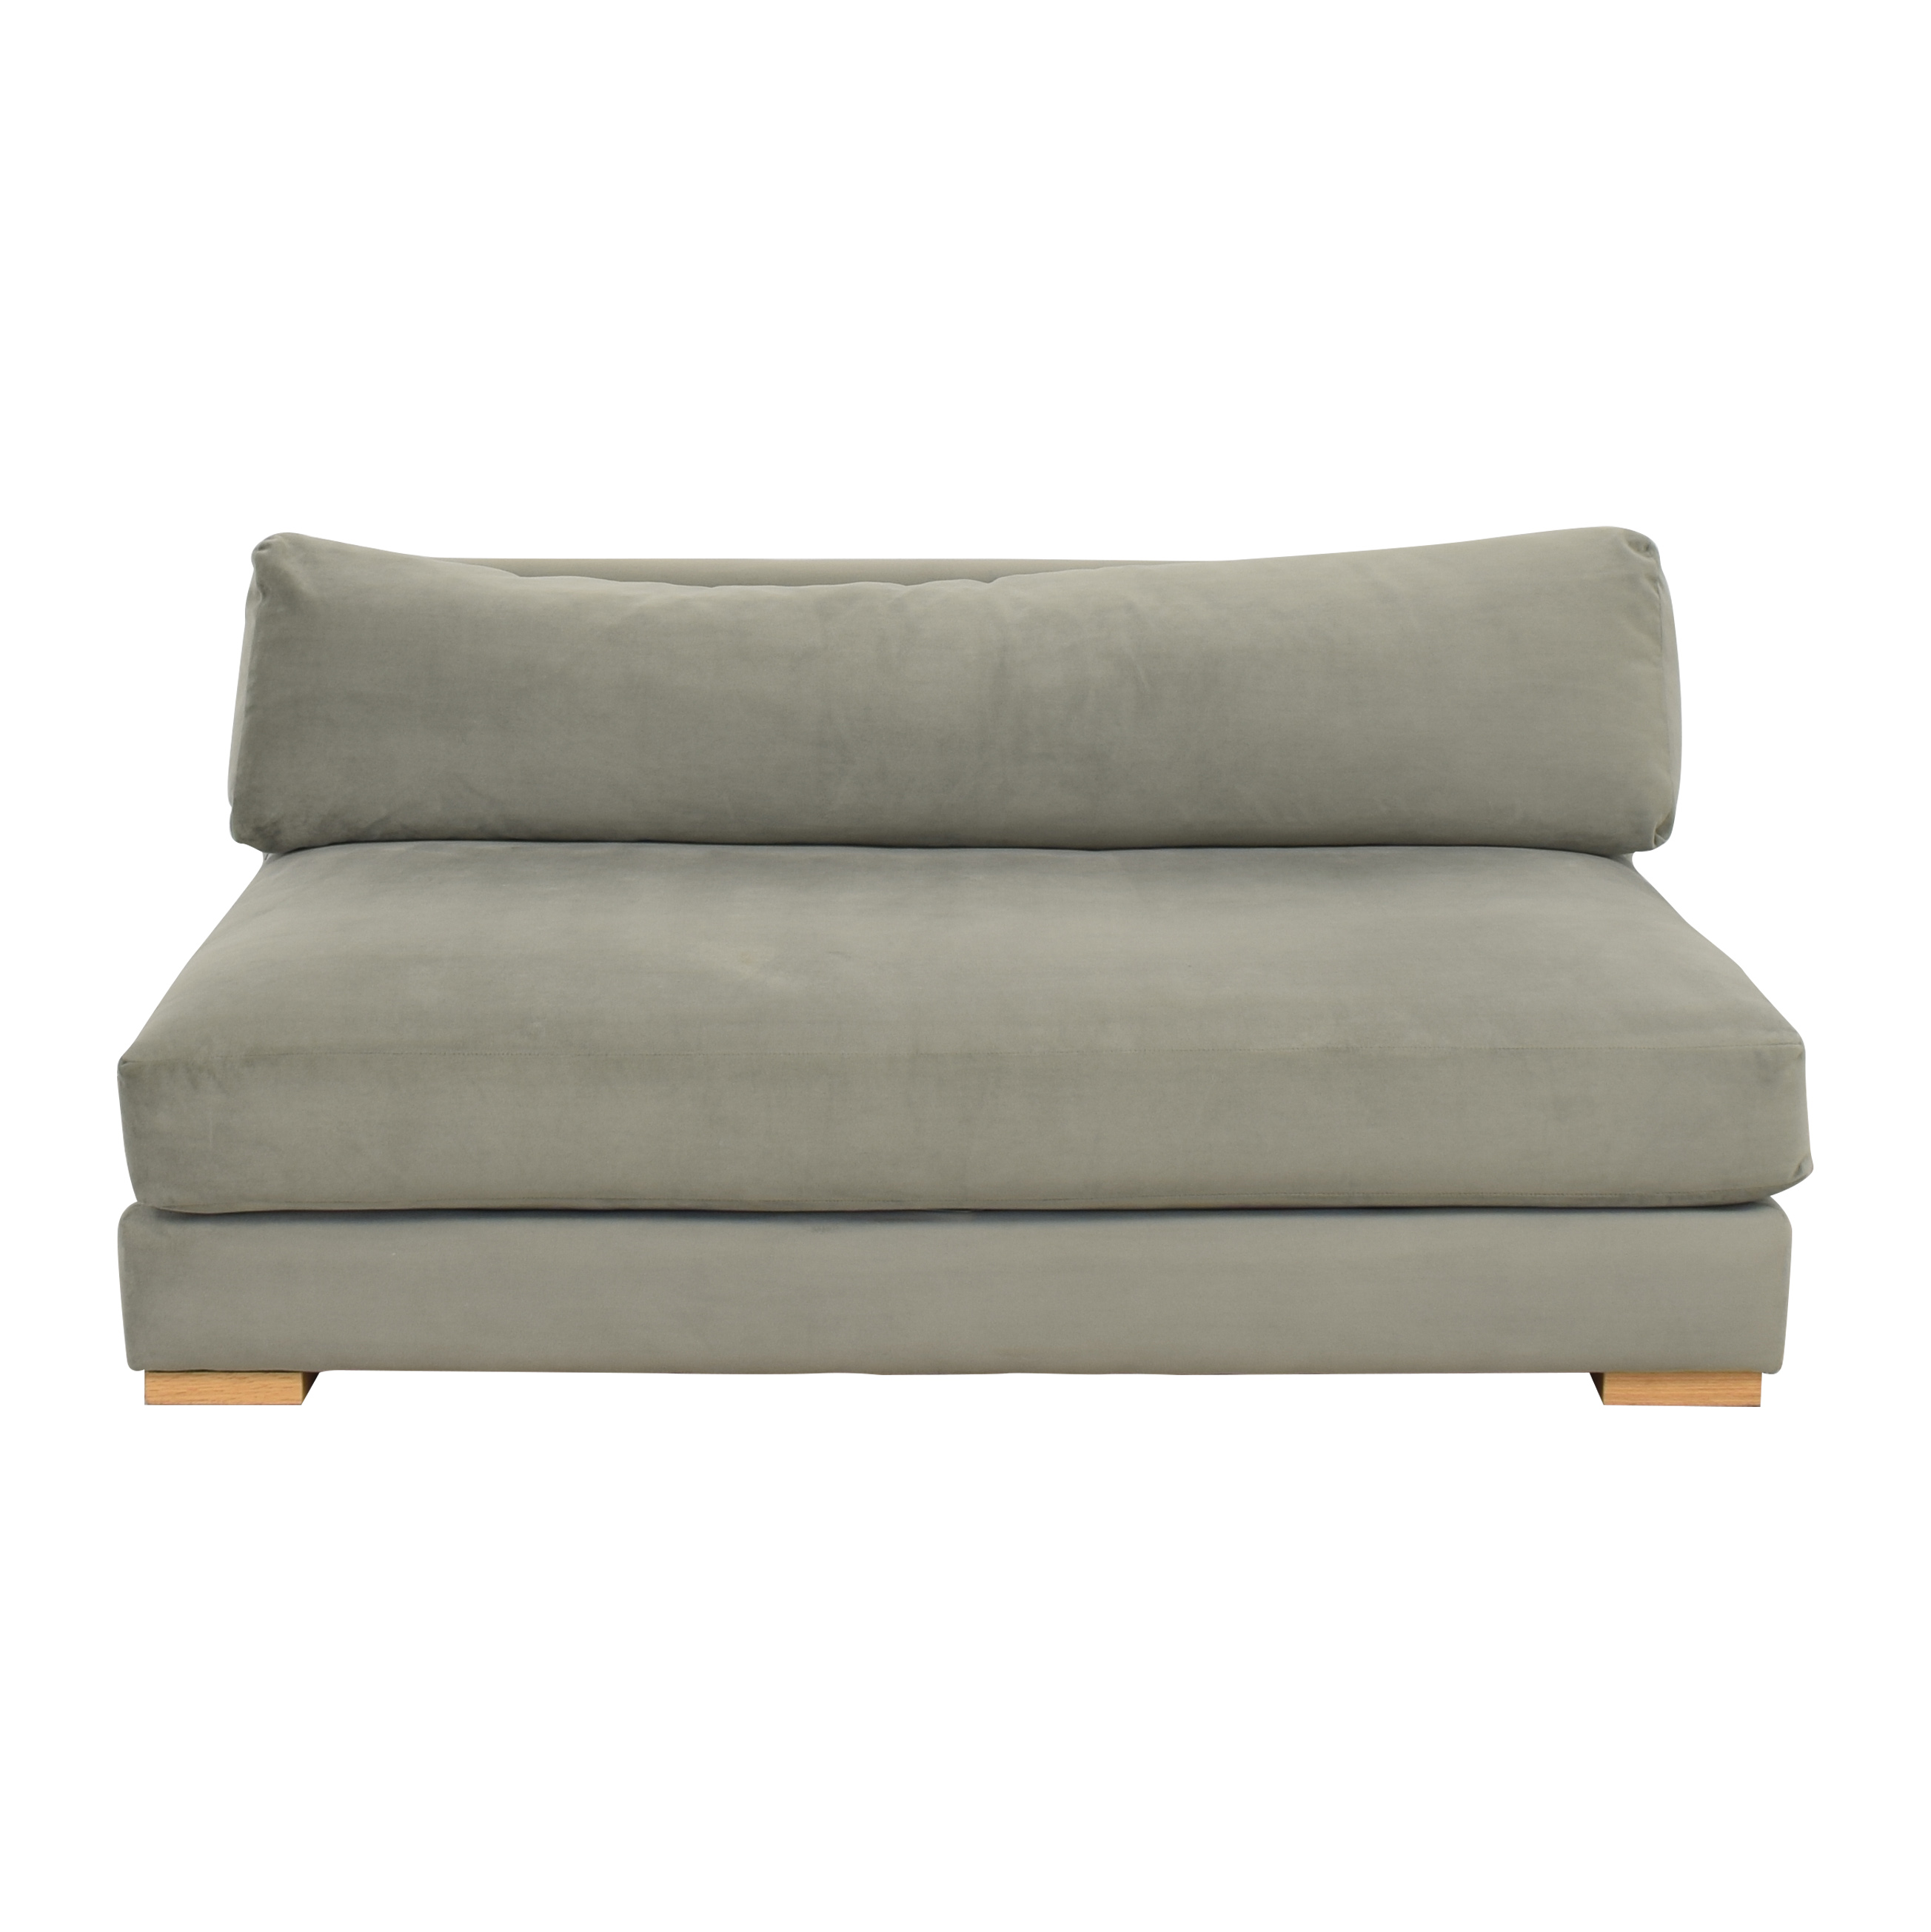 CB2 CB2 Piazza Apartment Sofa discount